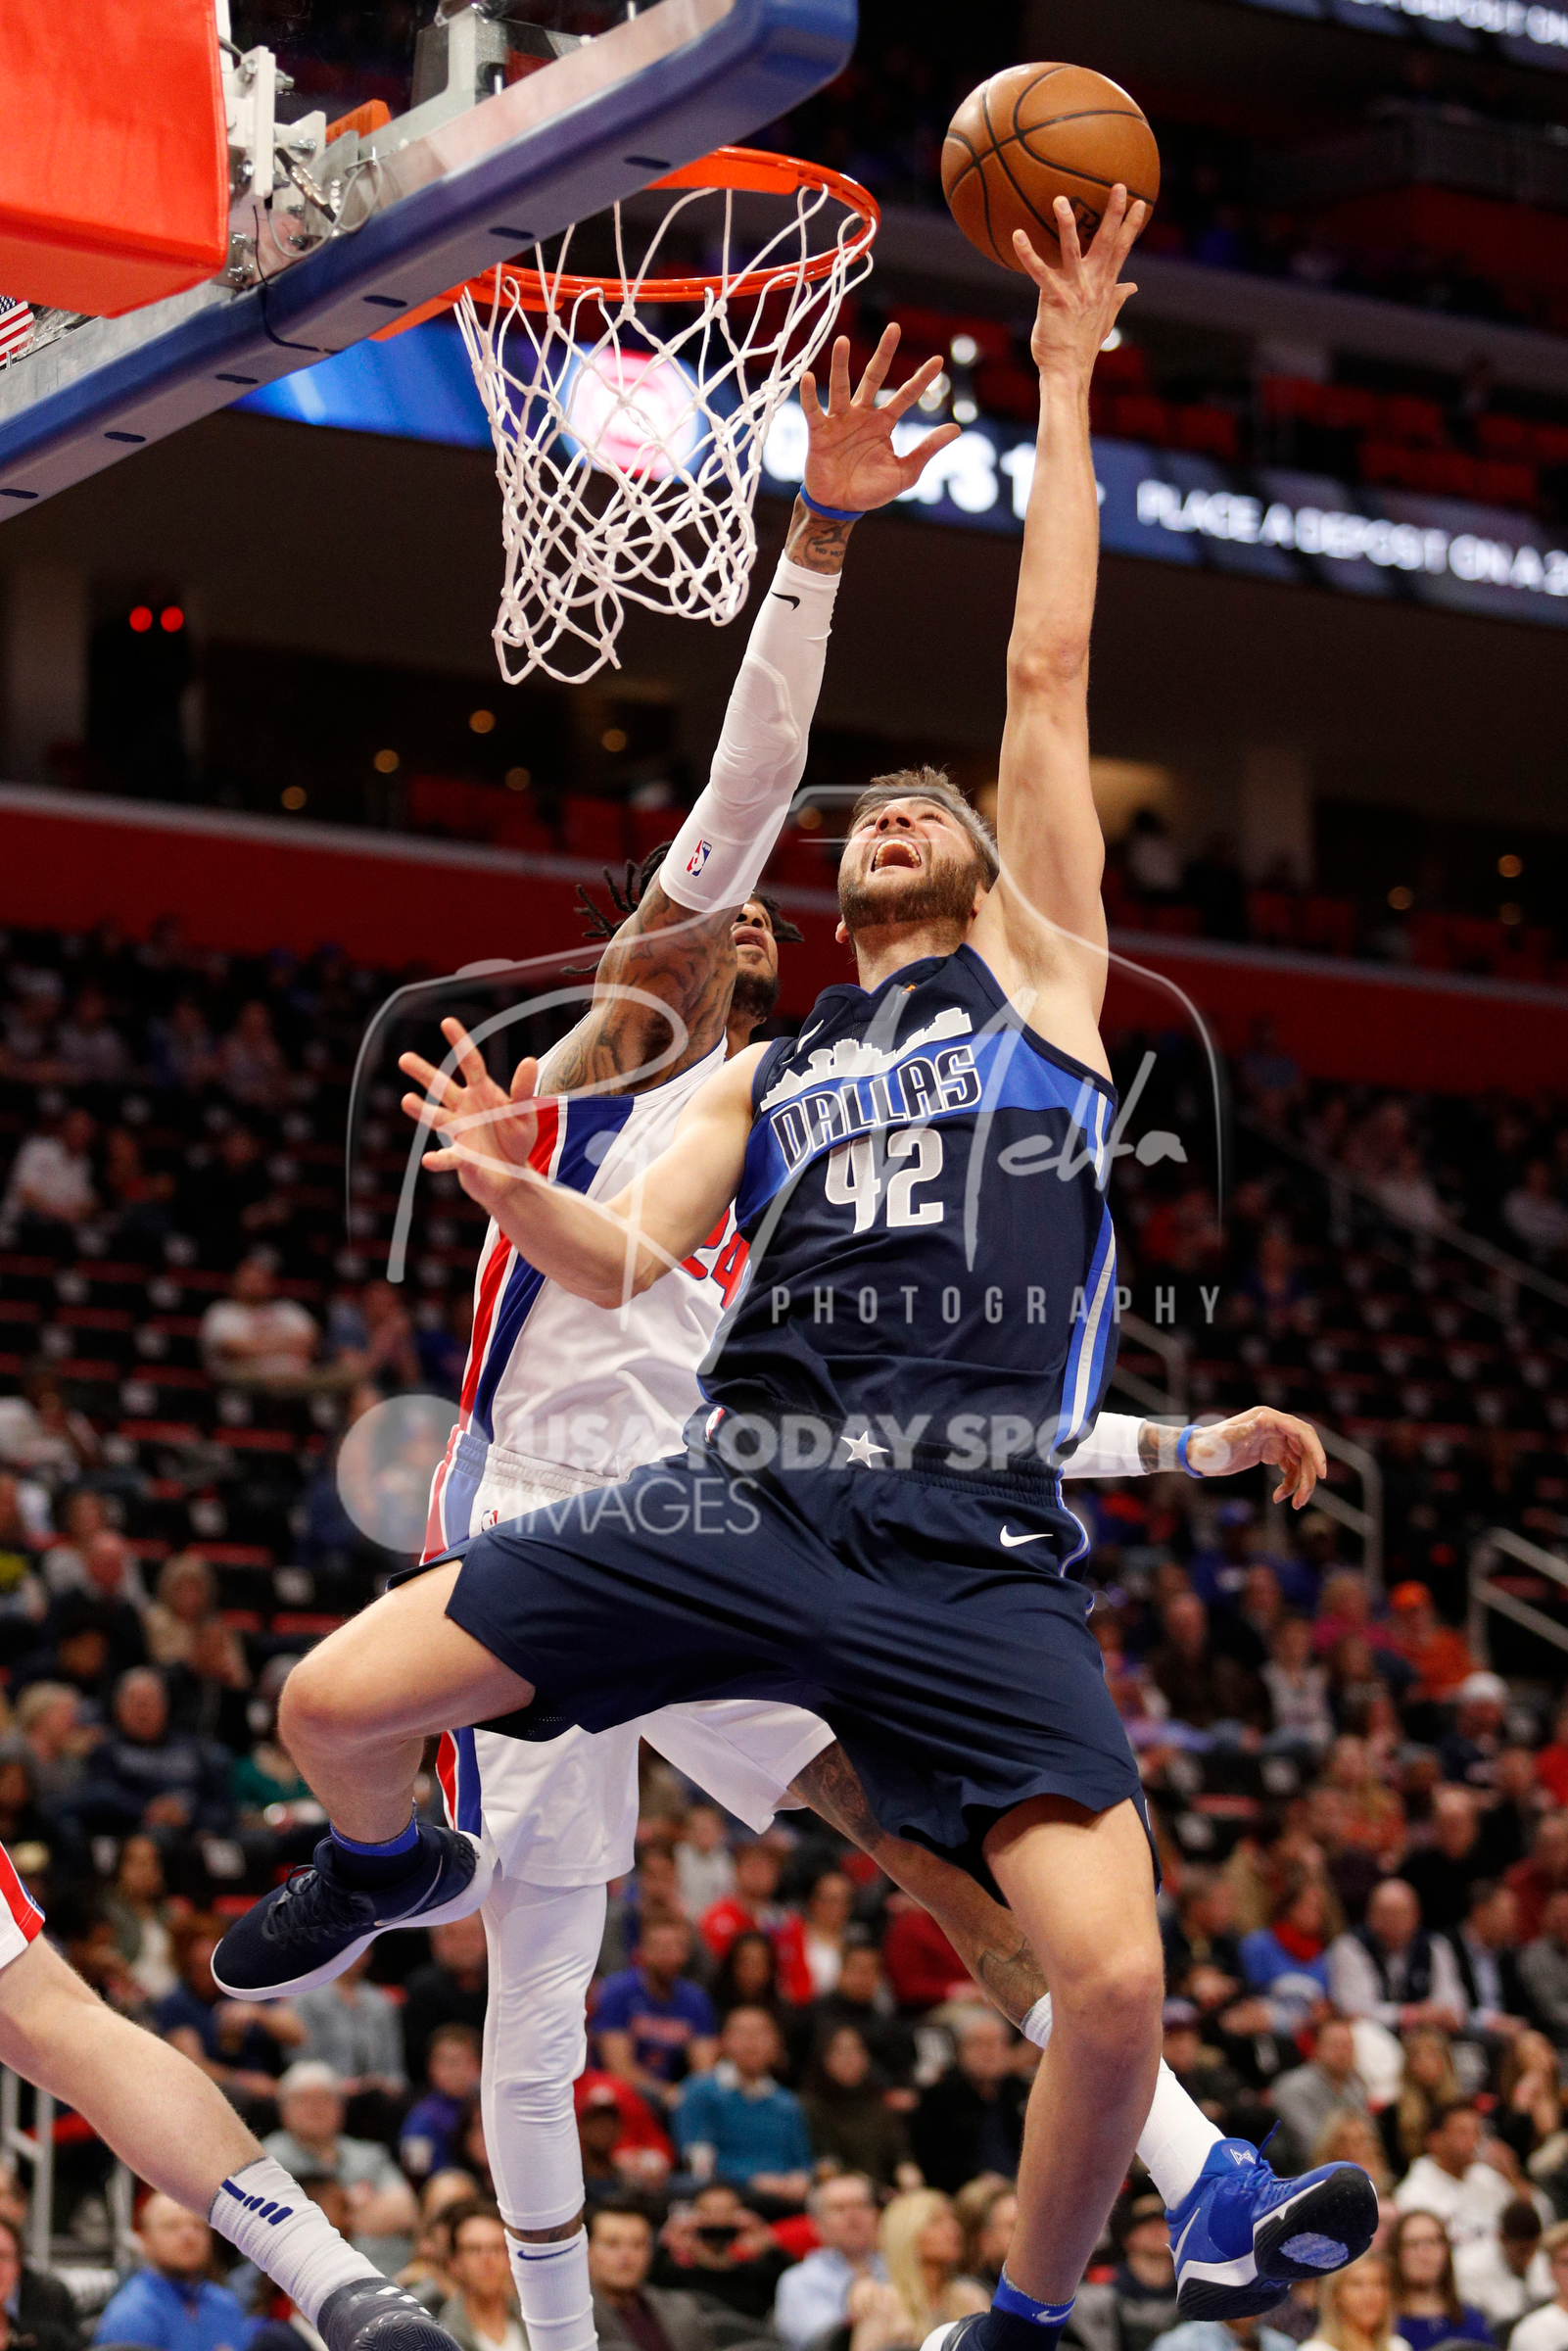 Apr 6, 2018; Detroit, MI, USA; Dallas Mavericks forward Maximilian Kleber (42) goes up for a shot against Detroit Pistons forward Eric Moreland (24) during the second quarter at Little Caesars Arena. Mandatory Credit: Raj Mehta-USA TODAY Sports